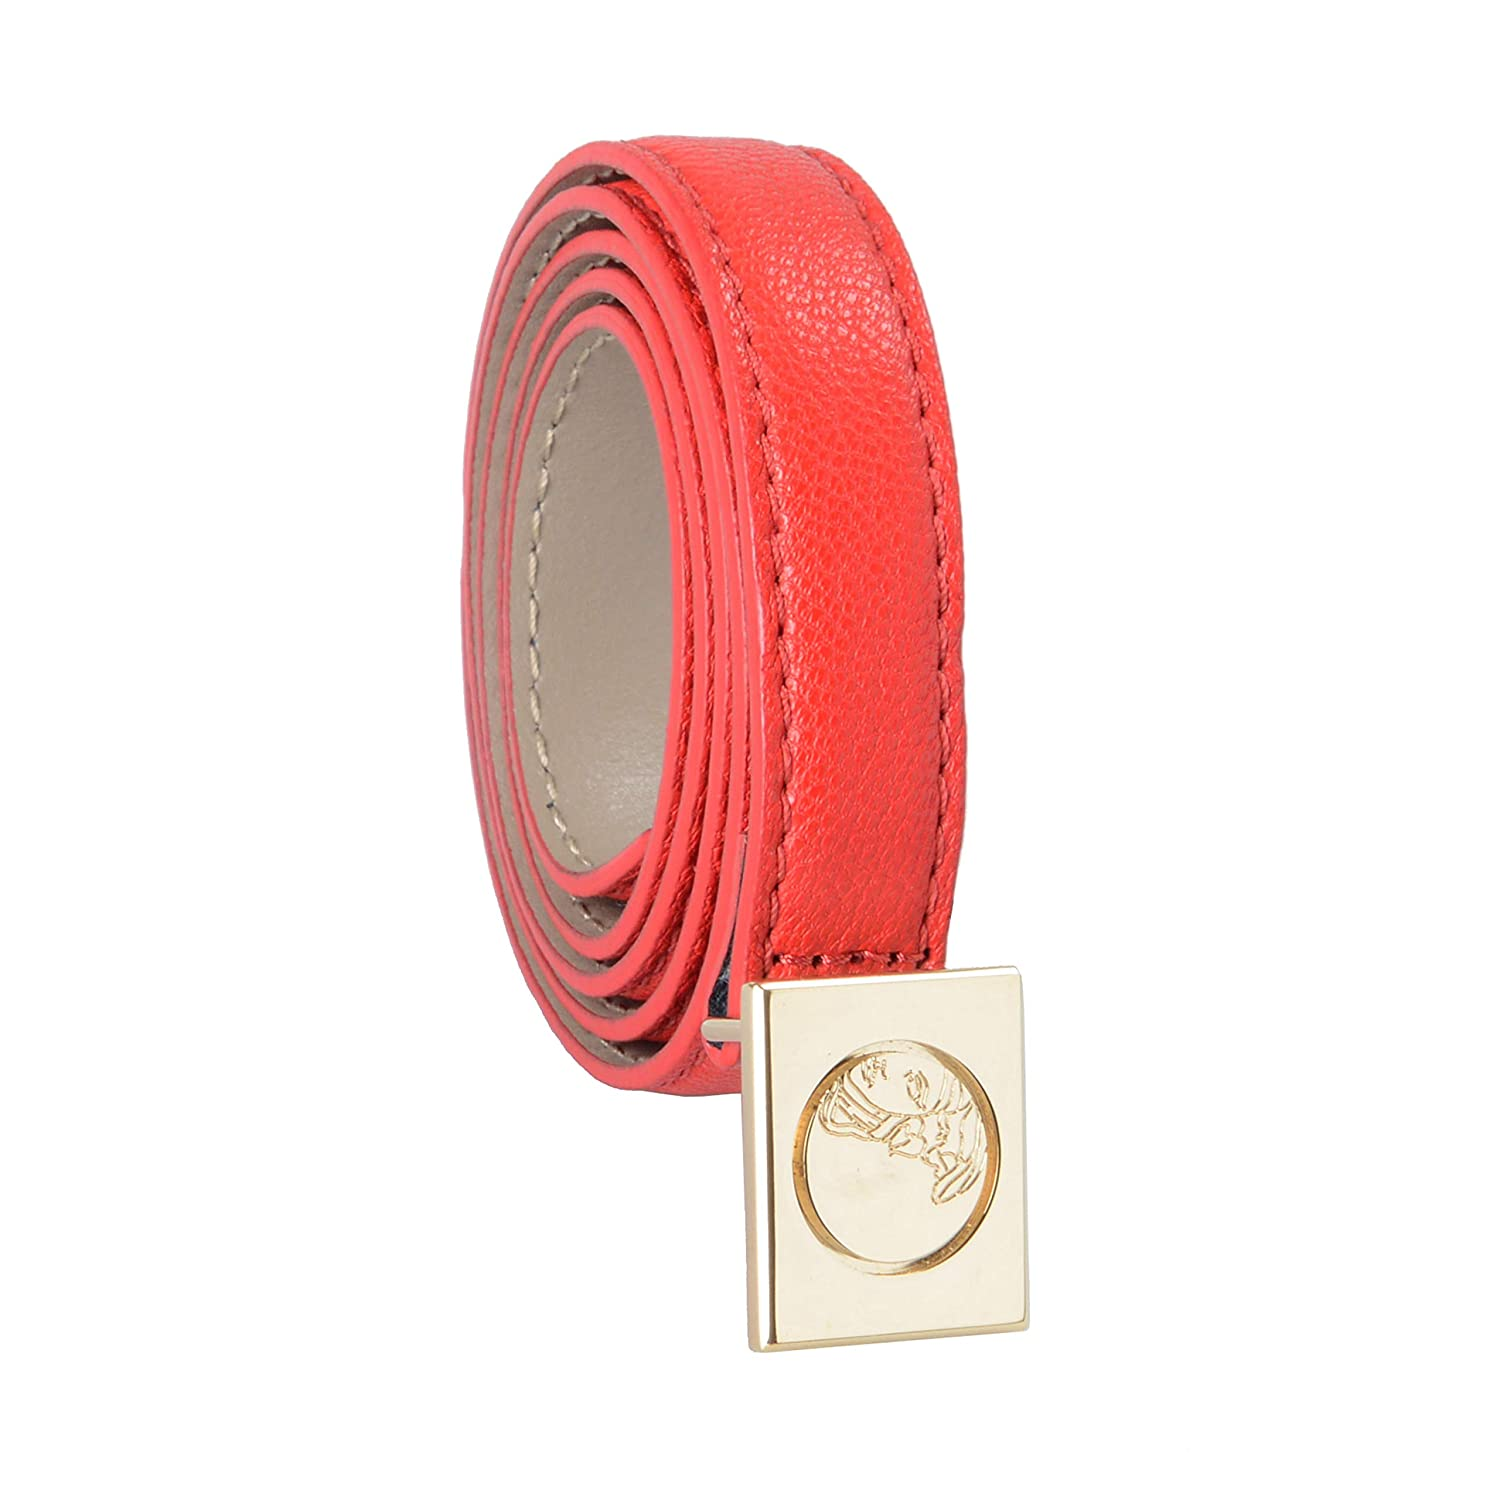 Versace Collection 100% Leather Red Women's Belt US 85 IT 100